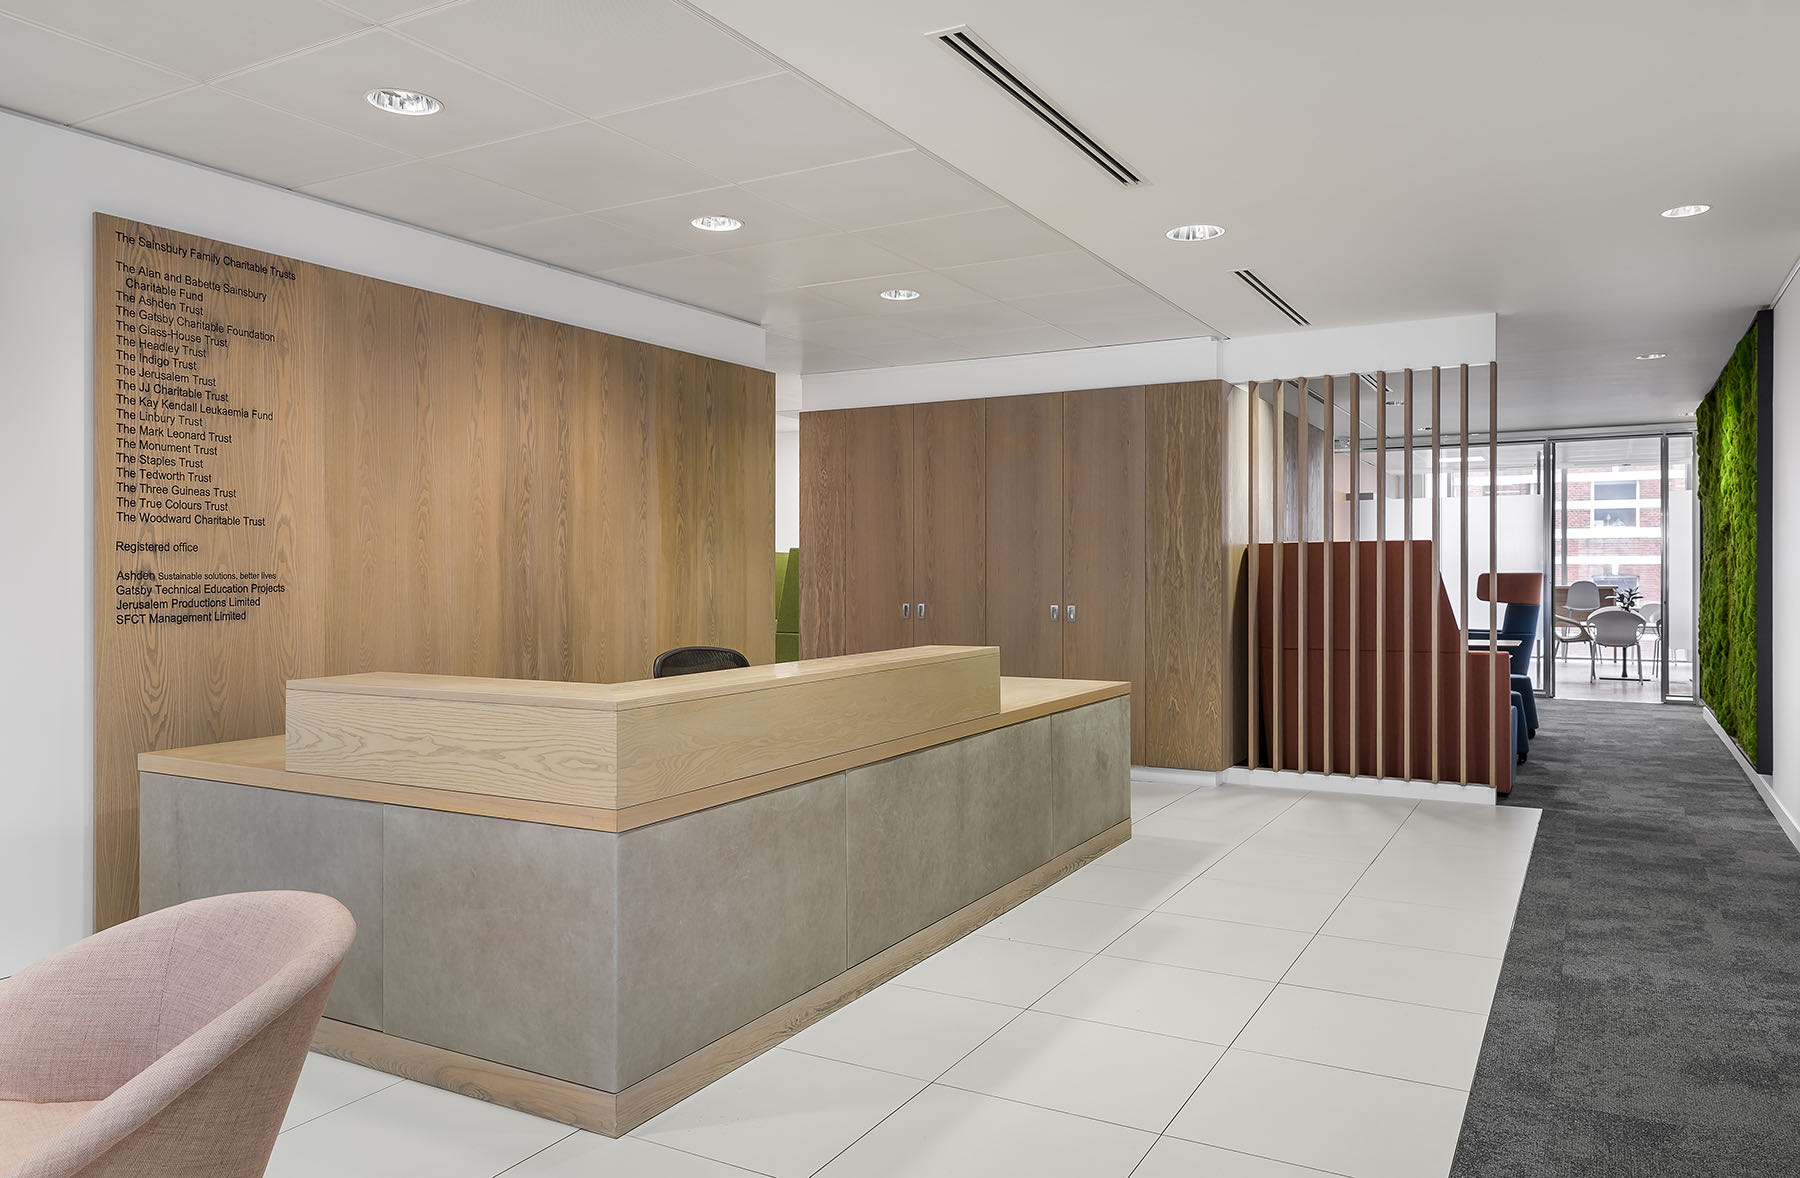 A Look Inside Sainsbury Family Charitable Trusts' London Office